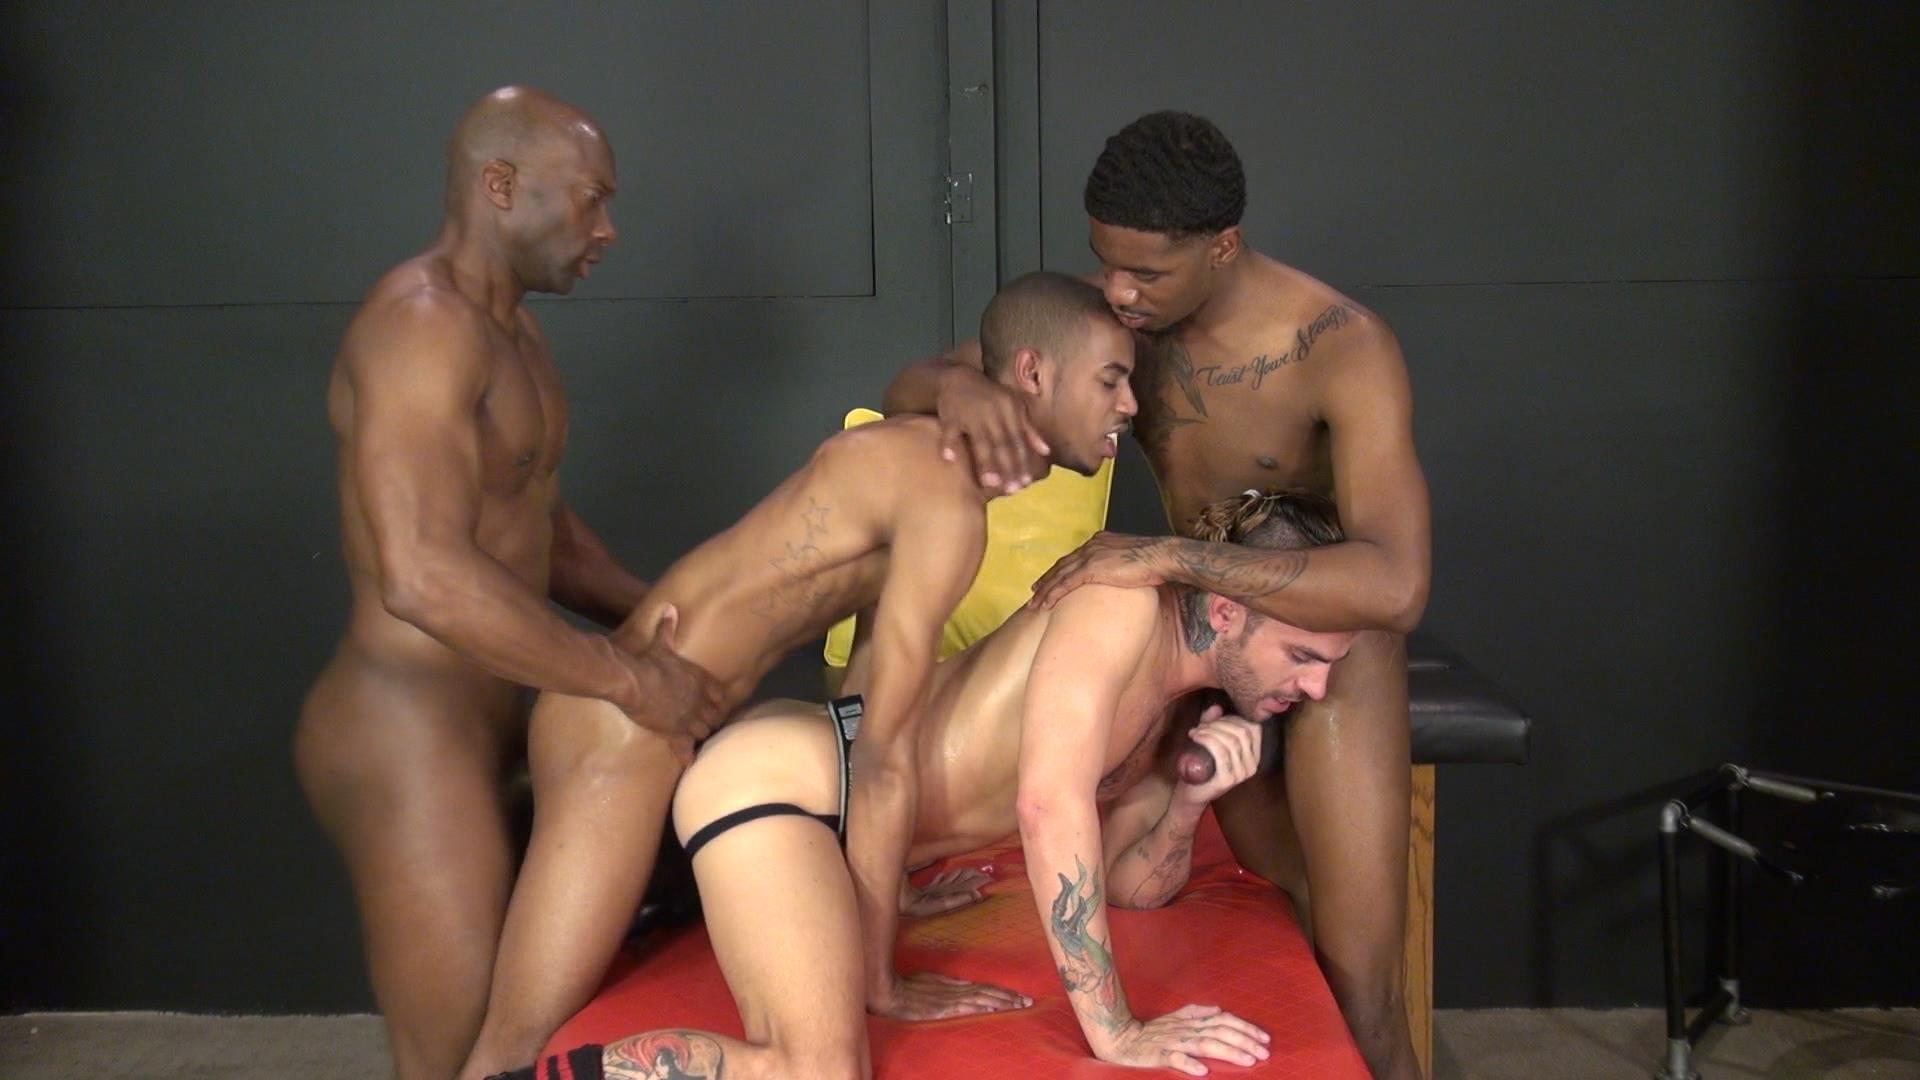 Raw and Rough Champ Robinson Lukas Cipriani Knockout Tigger Redd BBBH Amateur Gay Porn 10 White Boy Gets A Breeding By Three Big Black Dicks